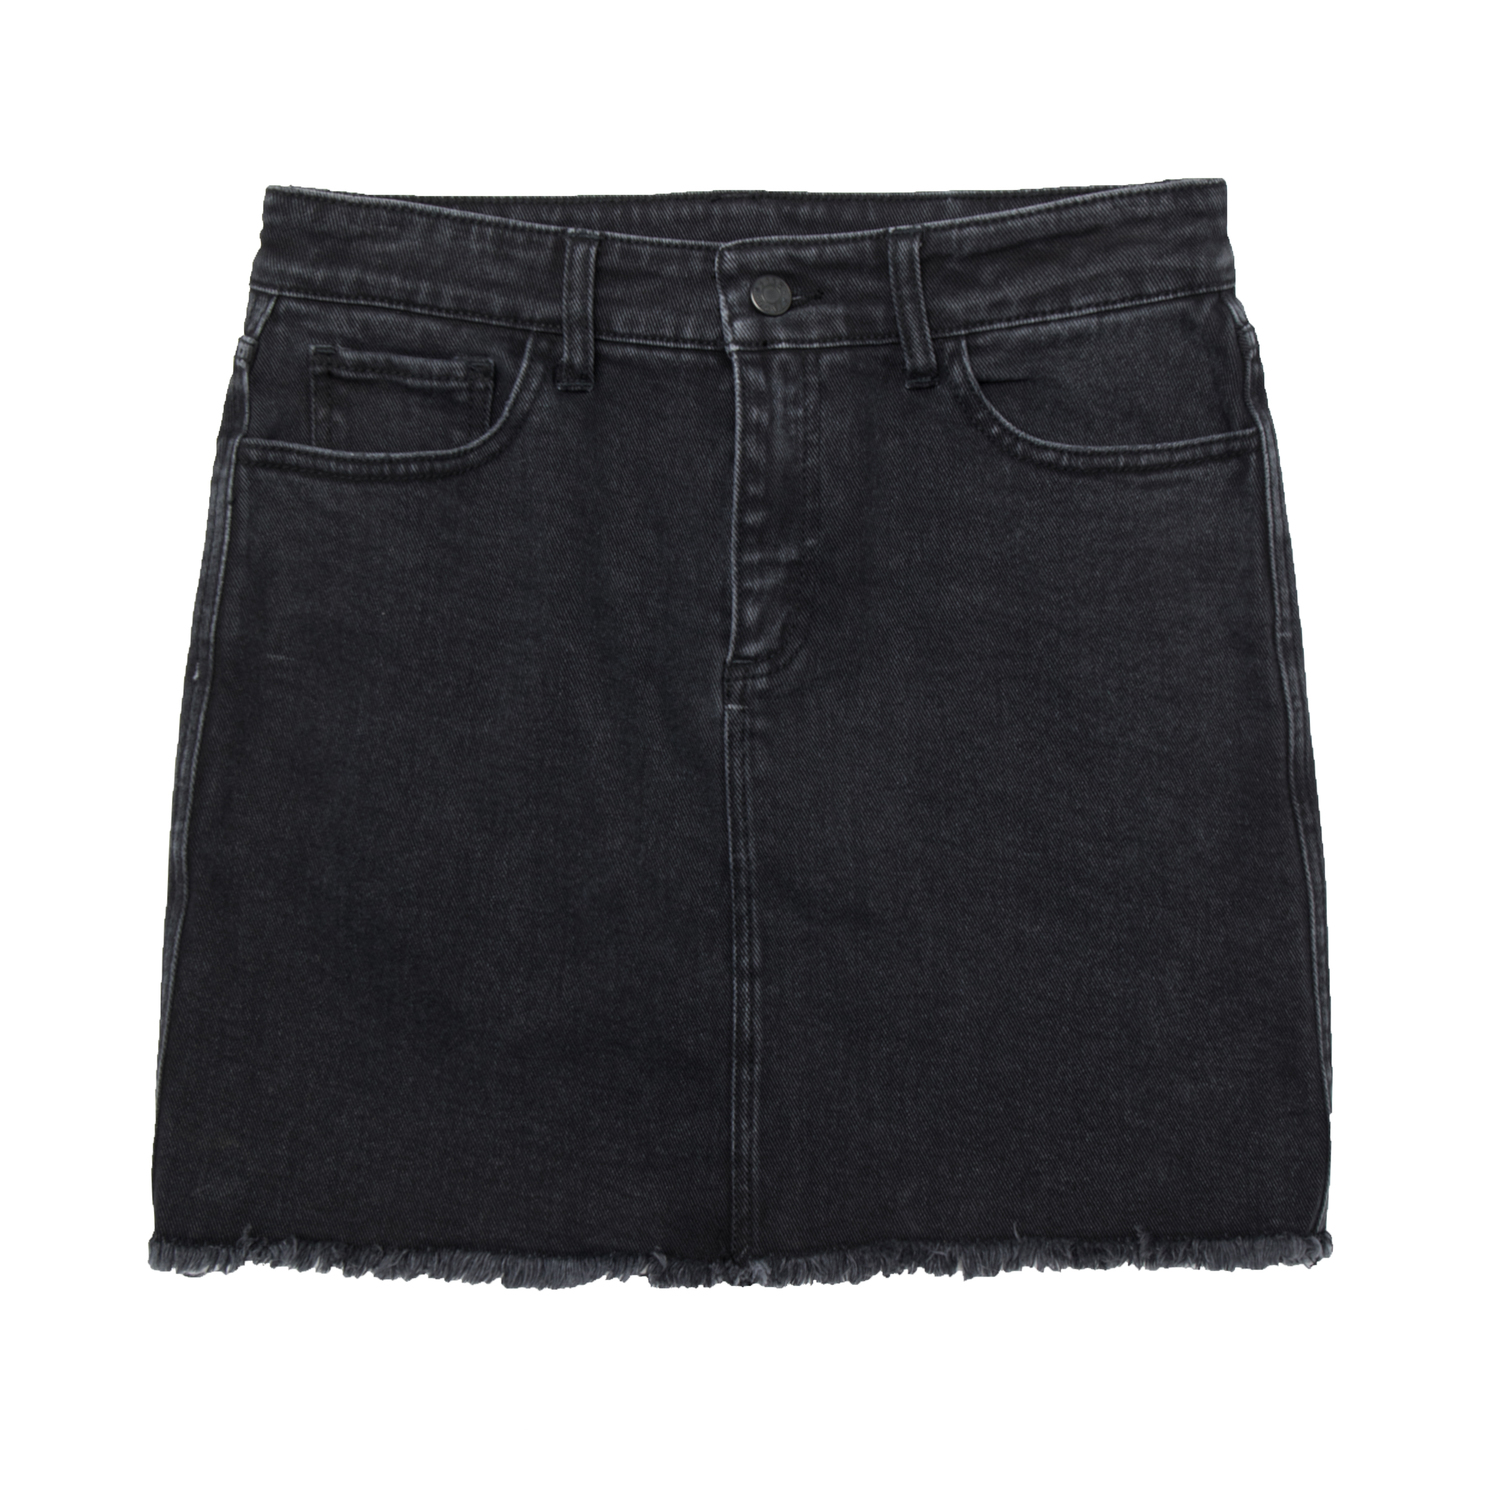 70564e736c Womens High Waisted Denim Skirt In Faded Black $75 | DSTLD